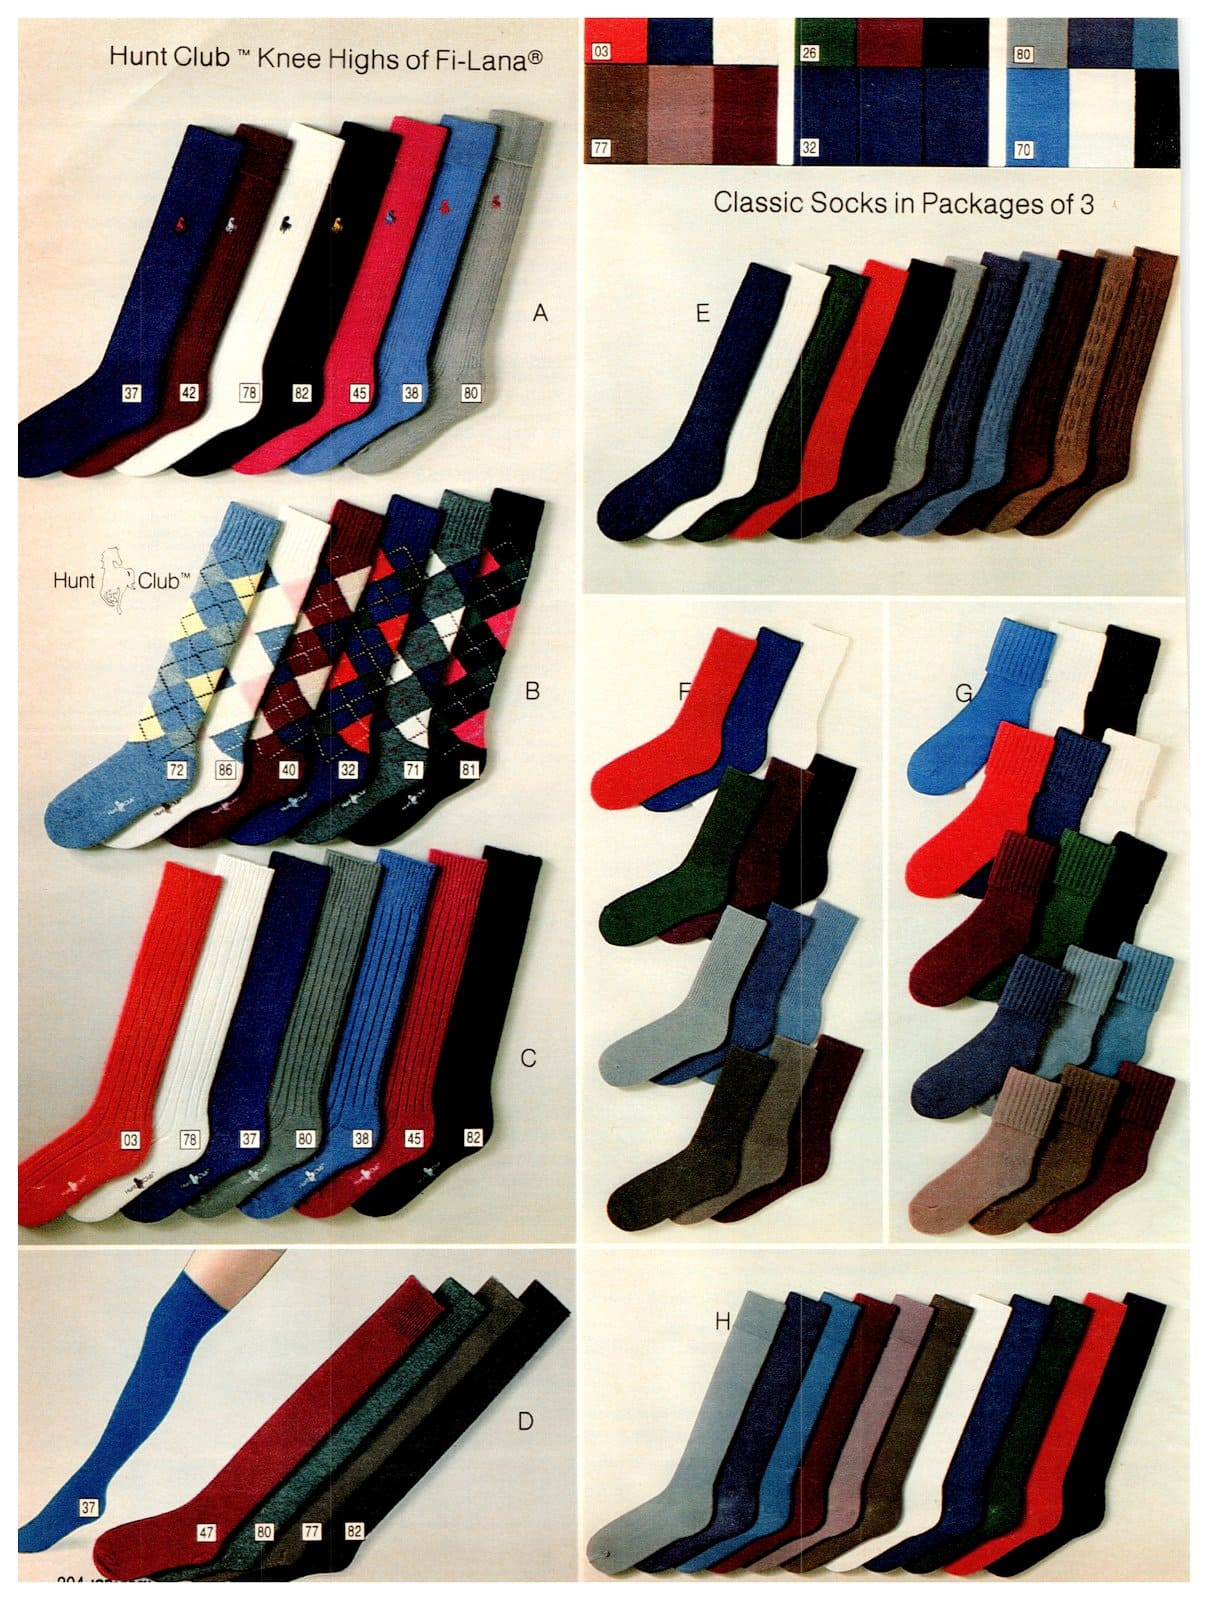 Colorful Hunt Club socks from 1983